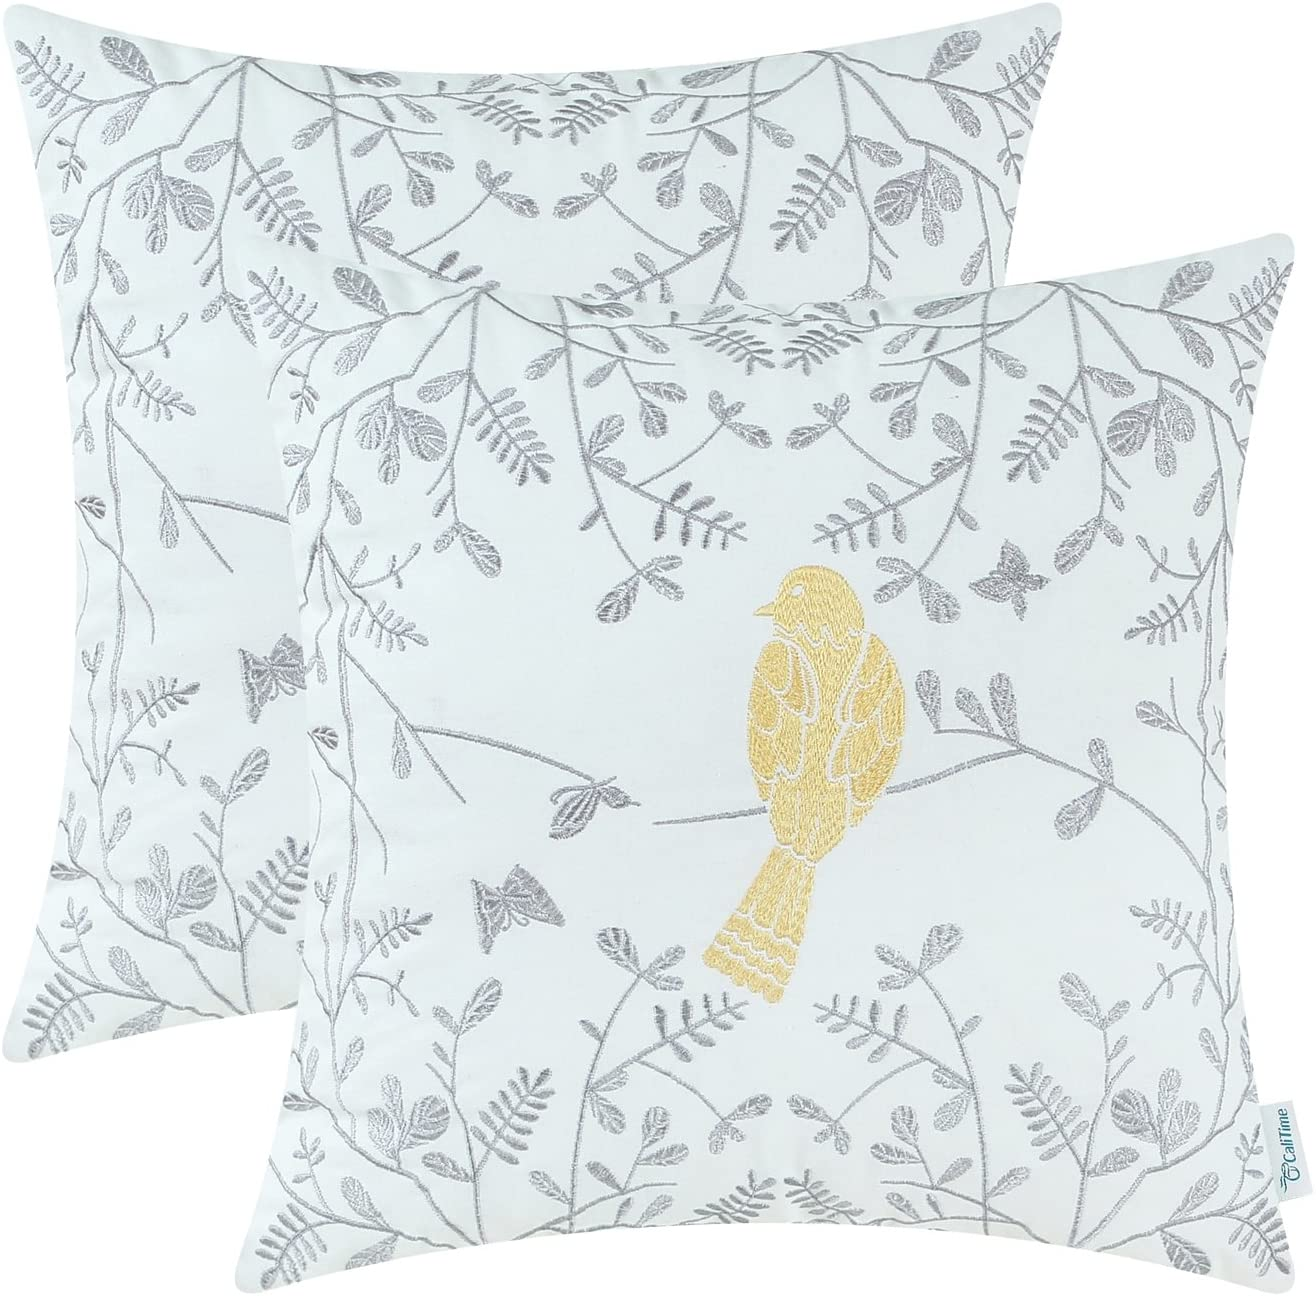 CaliTime Pack of 2 Cotton Throw Pillow Cases Covers for Bed Couch Sofa Cute Bird in Gray Garden Embroidered 18 X 18 Inches Gold